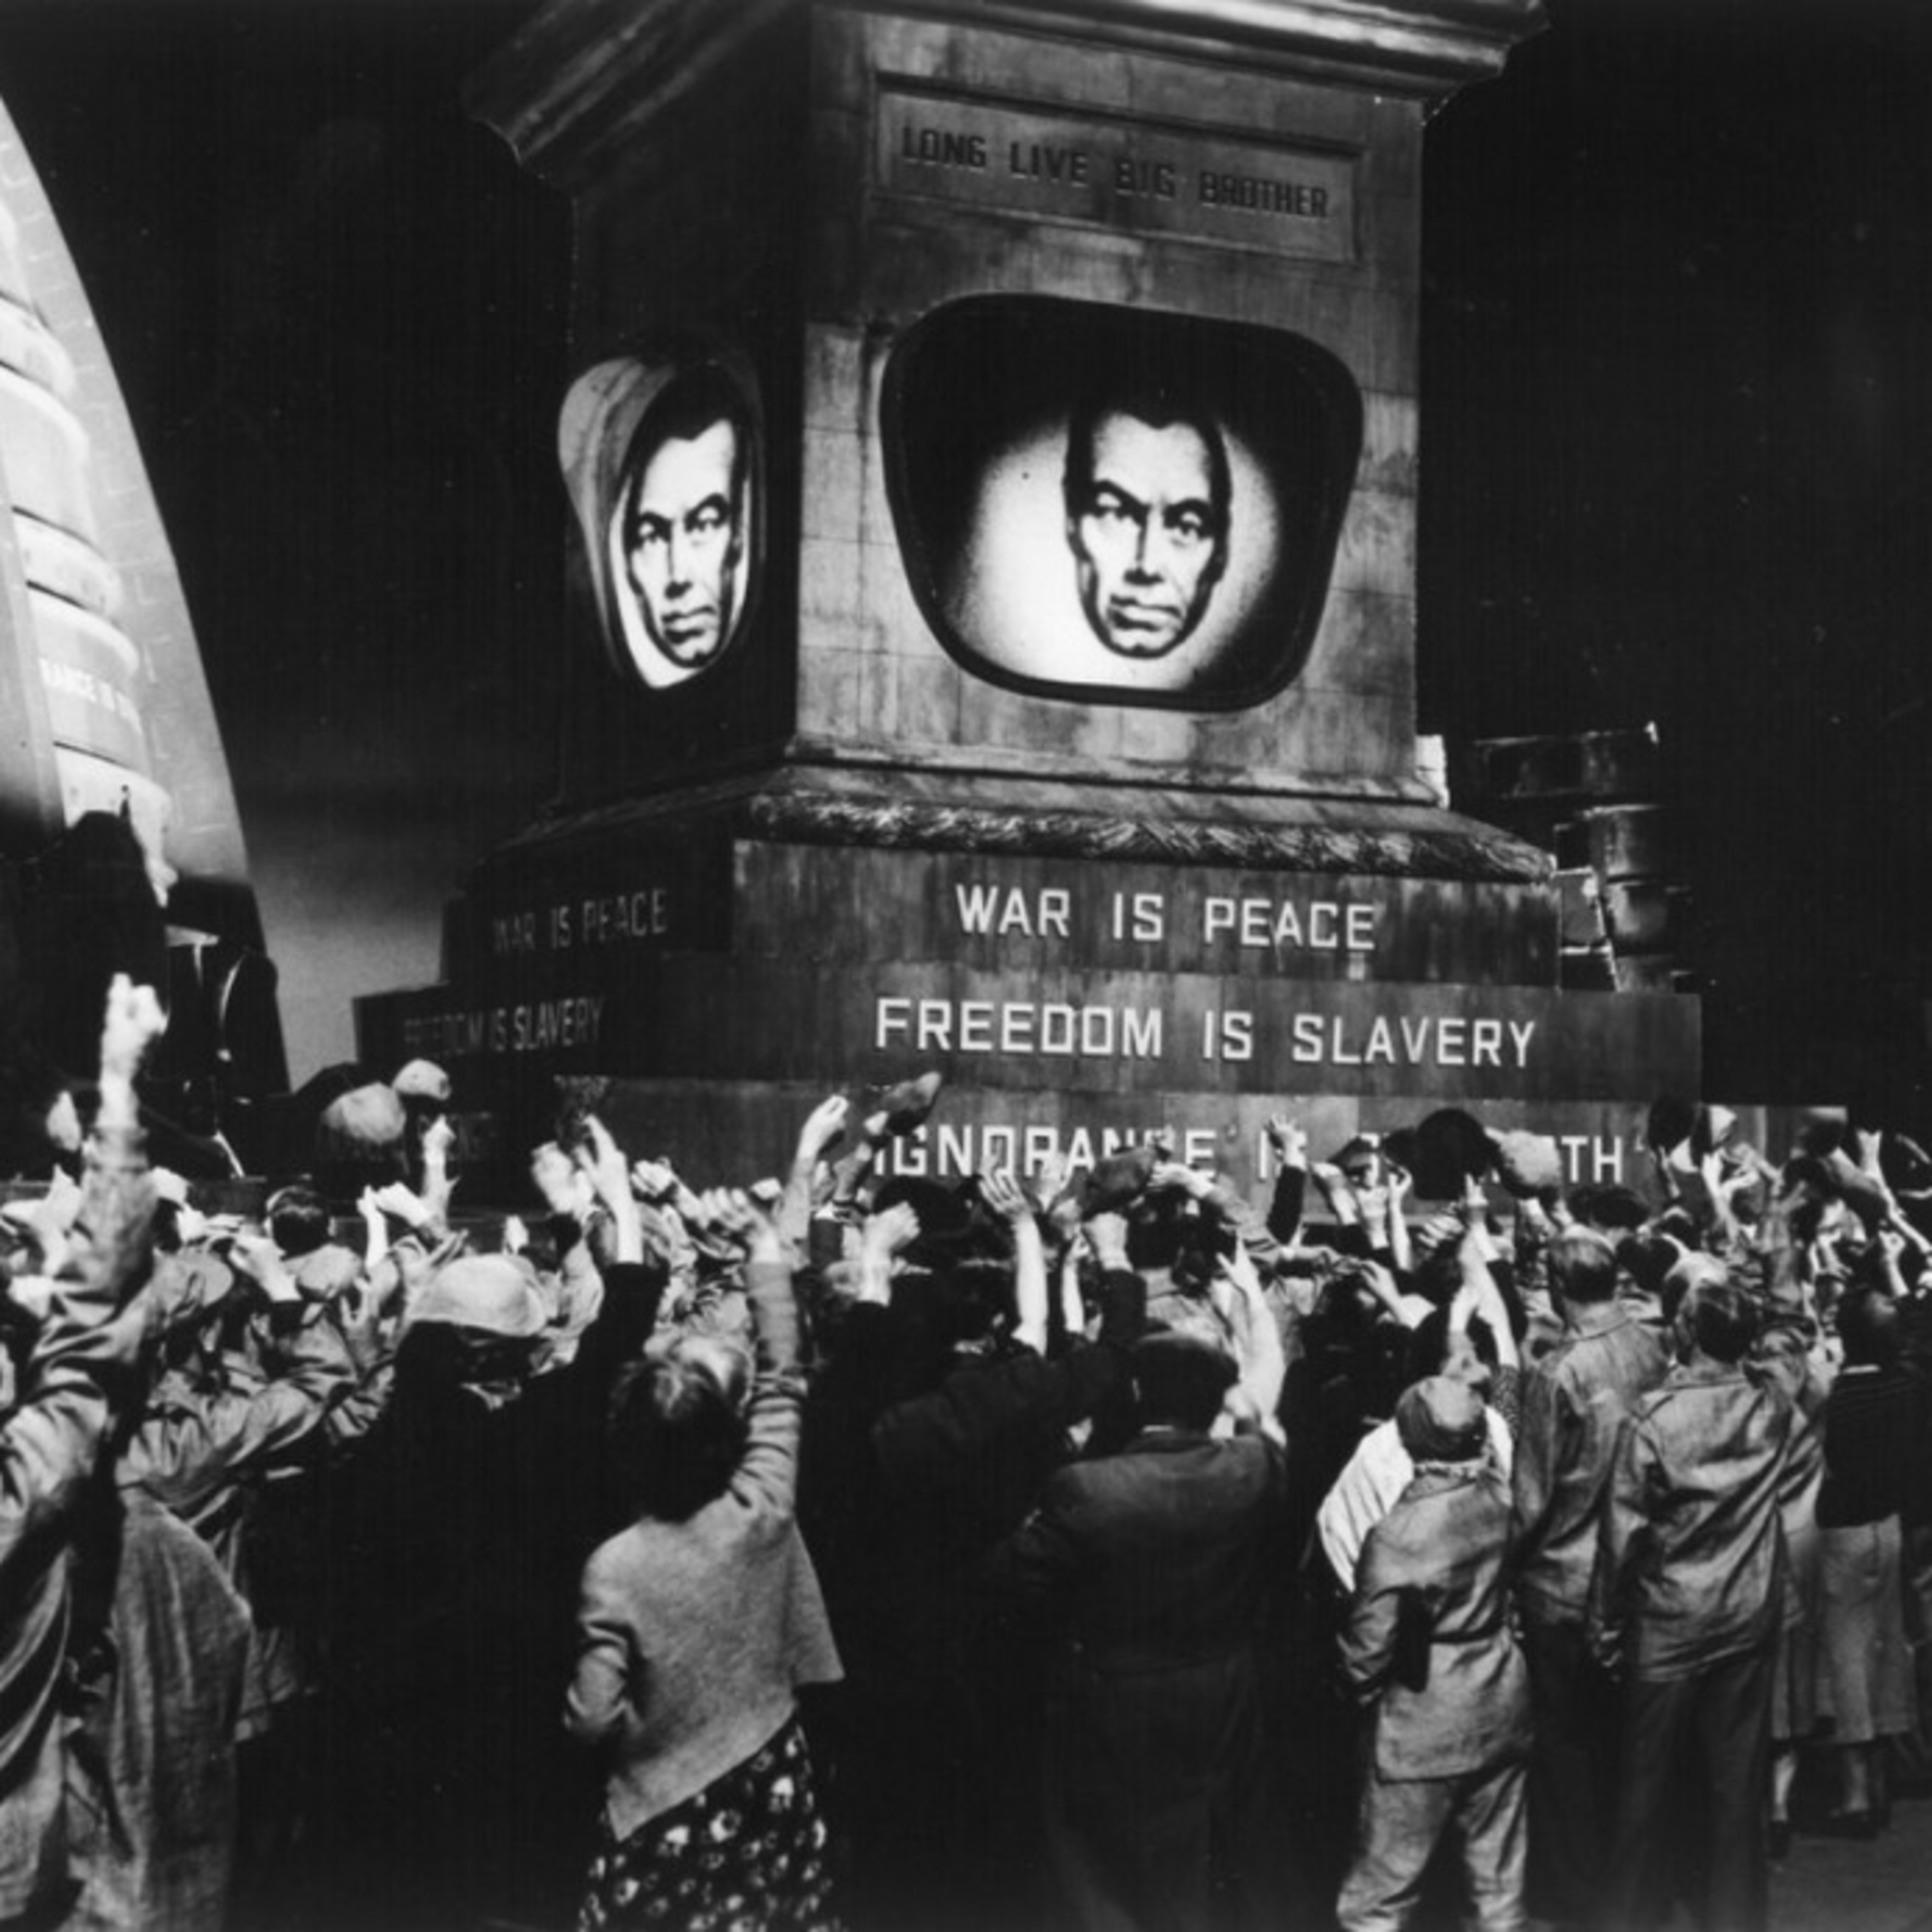 1984 - George Orwell's Dystopian Novel - Big Brother - Omnipresent Government Surveillance - Vincent Price - All-Star Radio Dramas of Classic Films - Lux Radio Theater